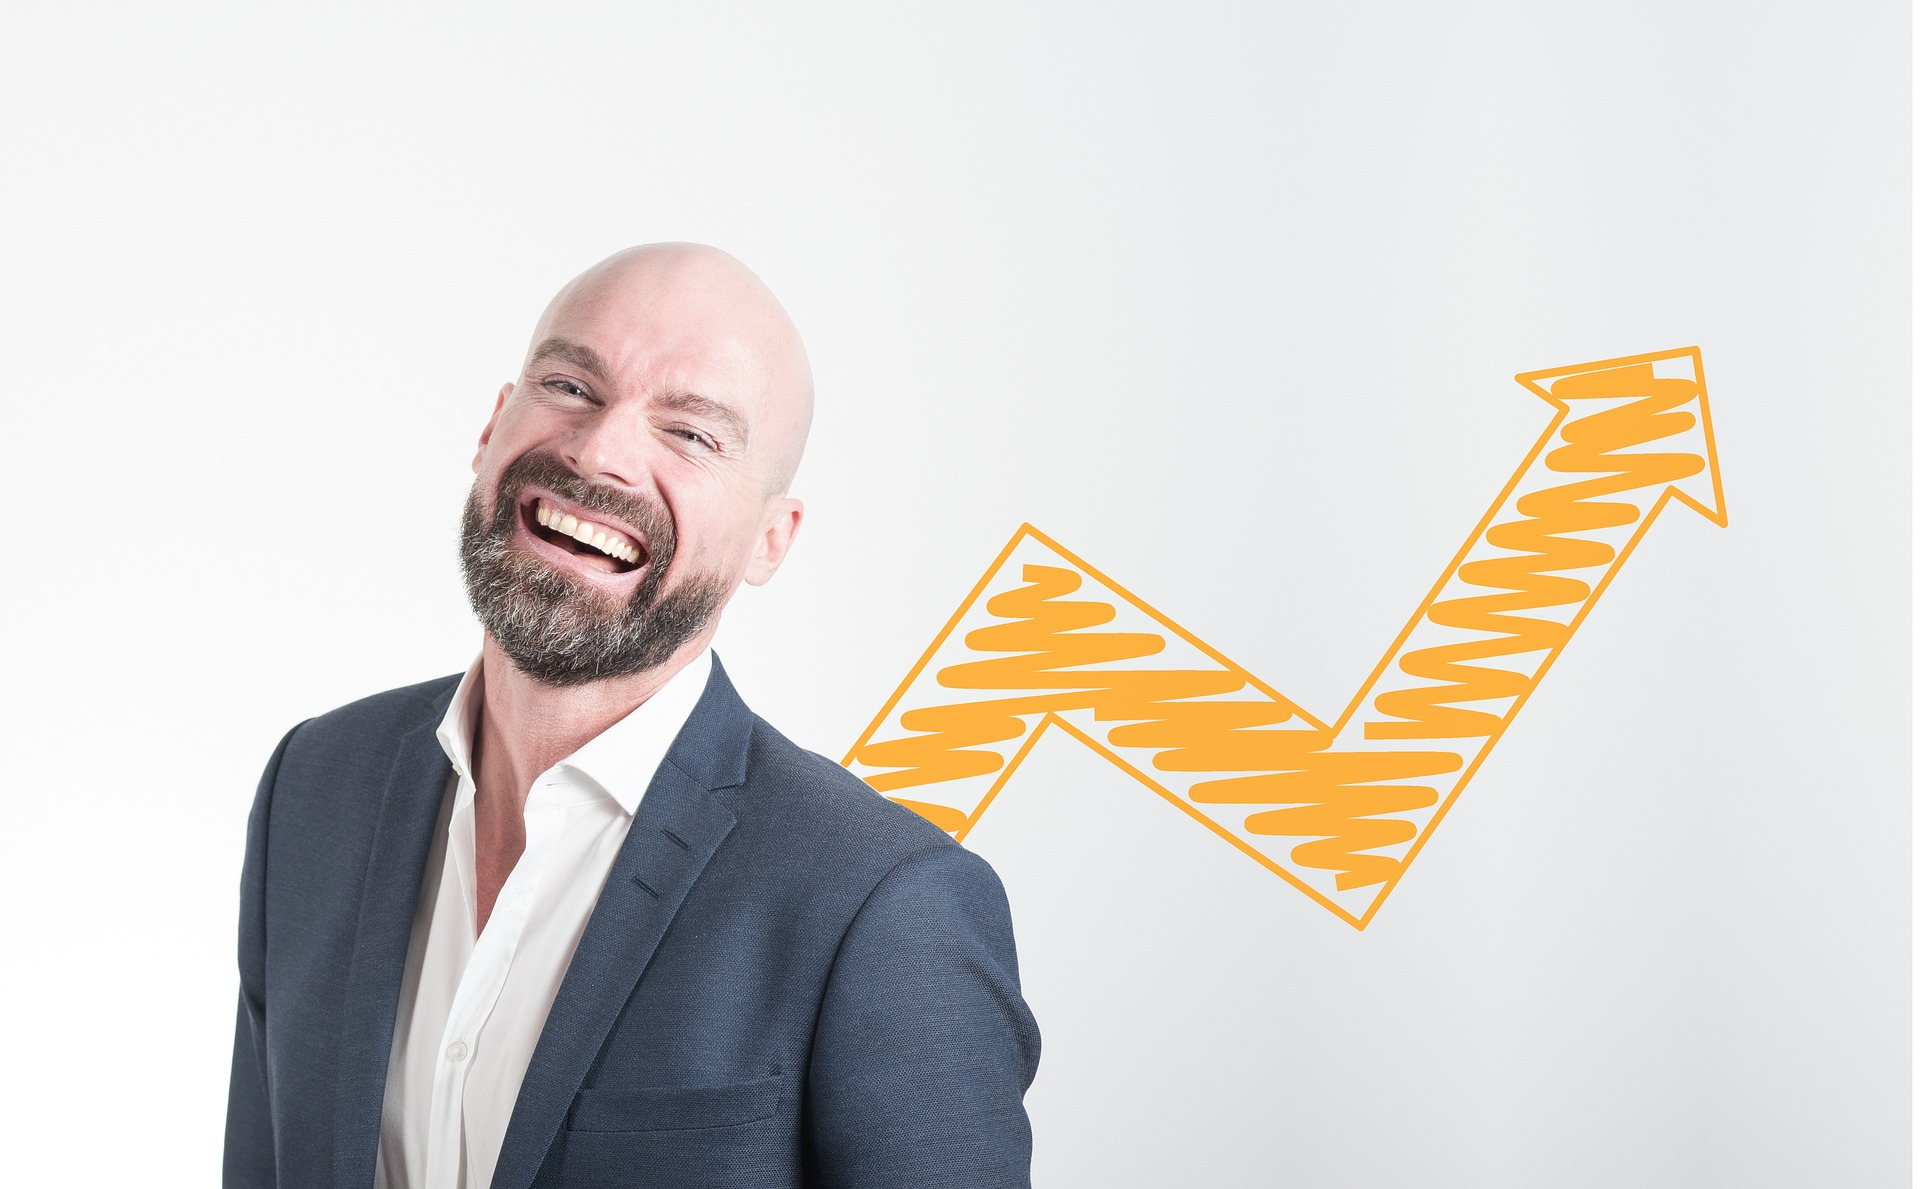 smiling man business coach